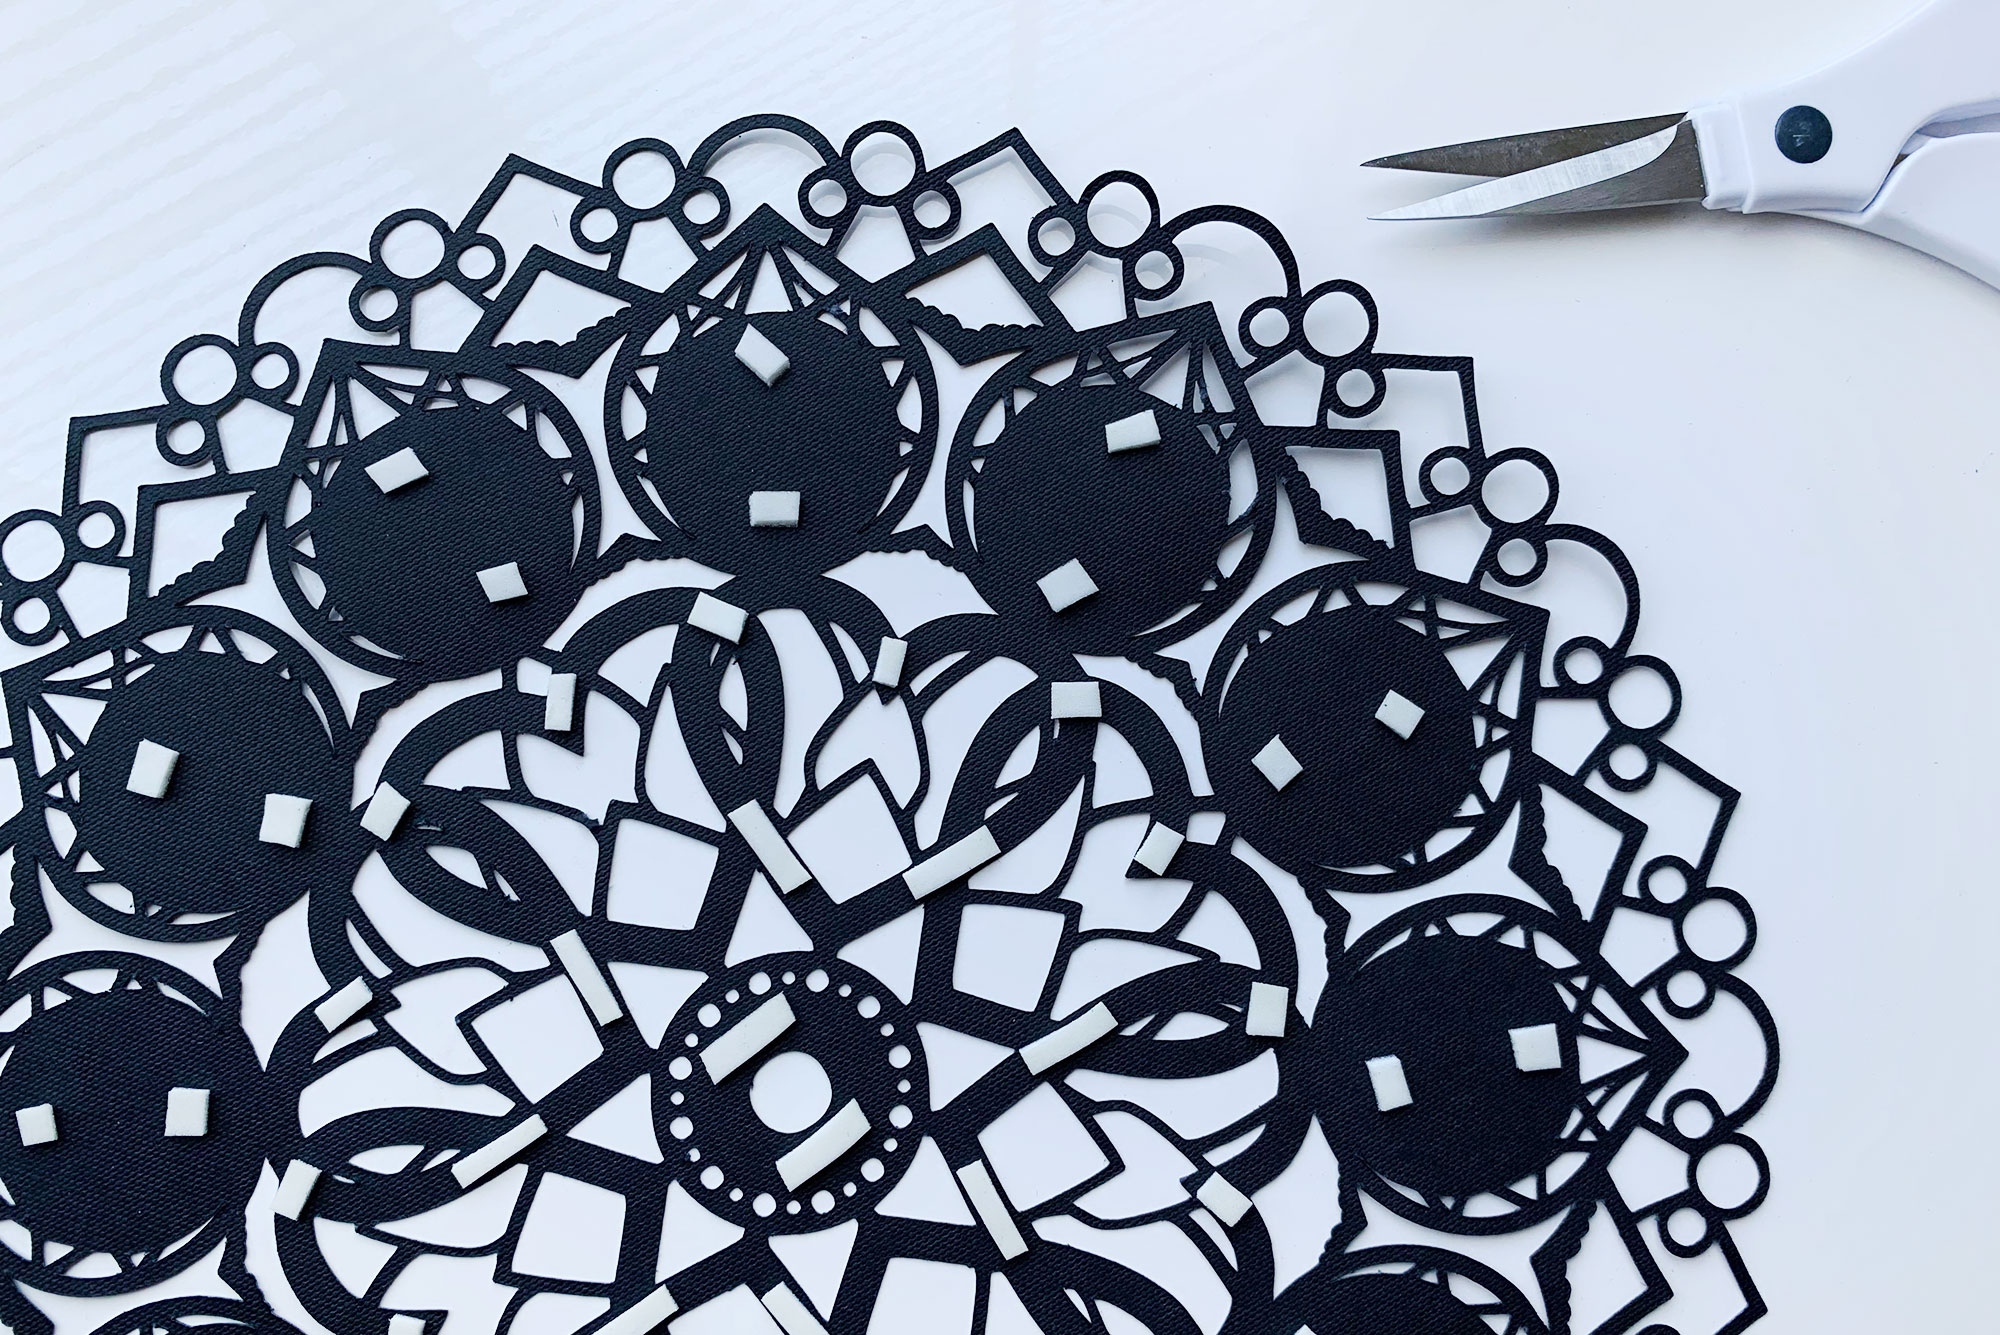 Cricut Layered Mandala Clock Tutorial